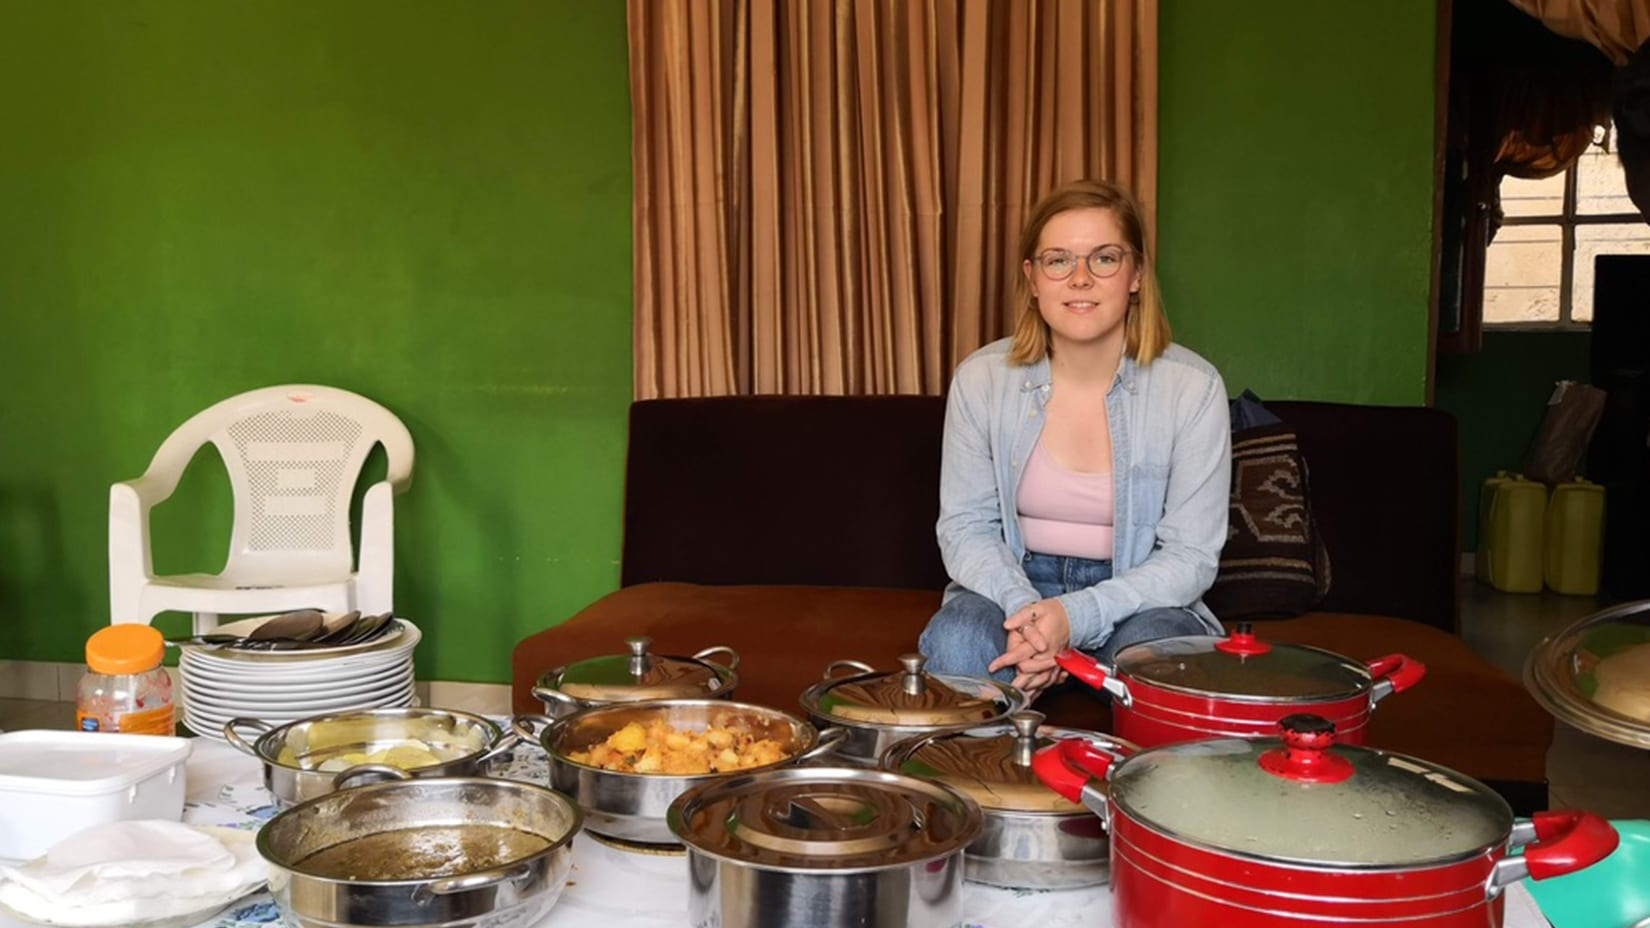 Regan poses behind a table covered in pots of food.